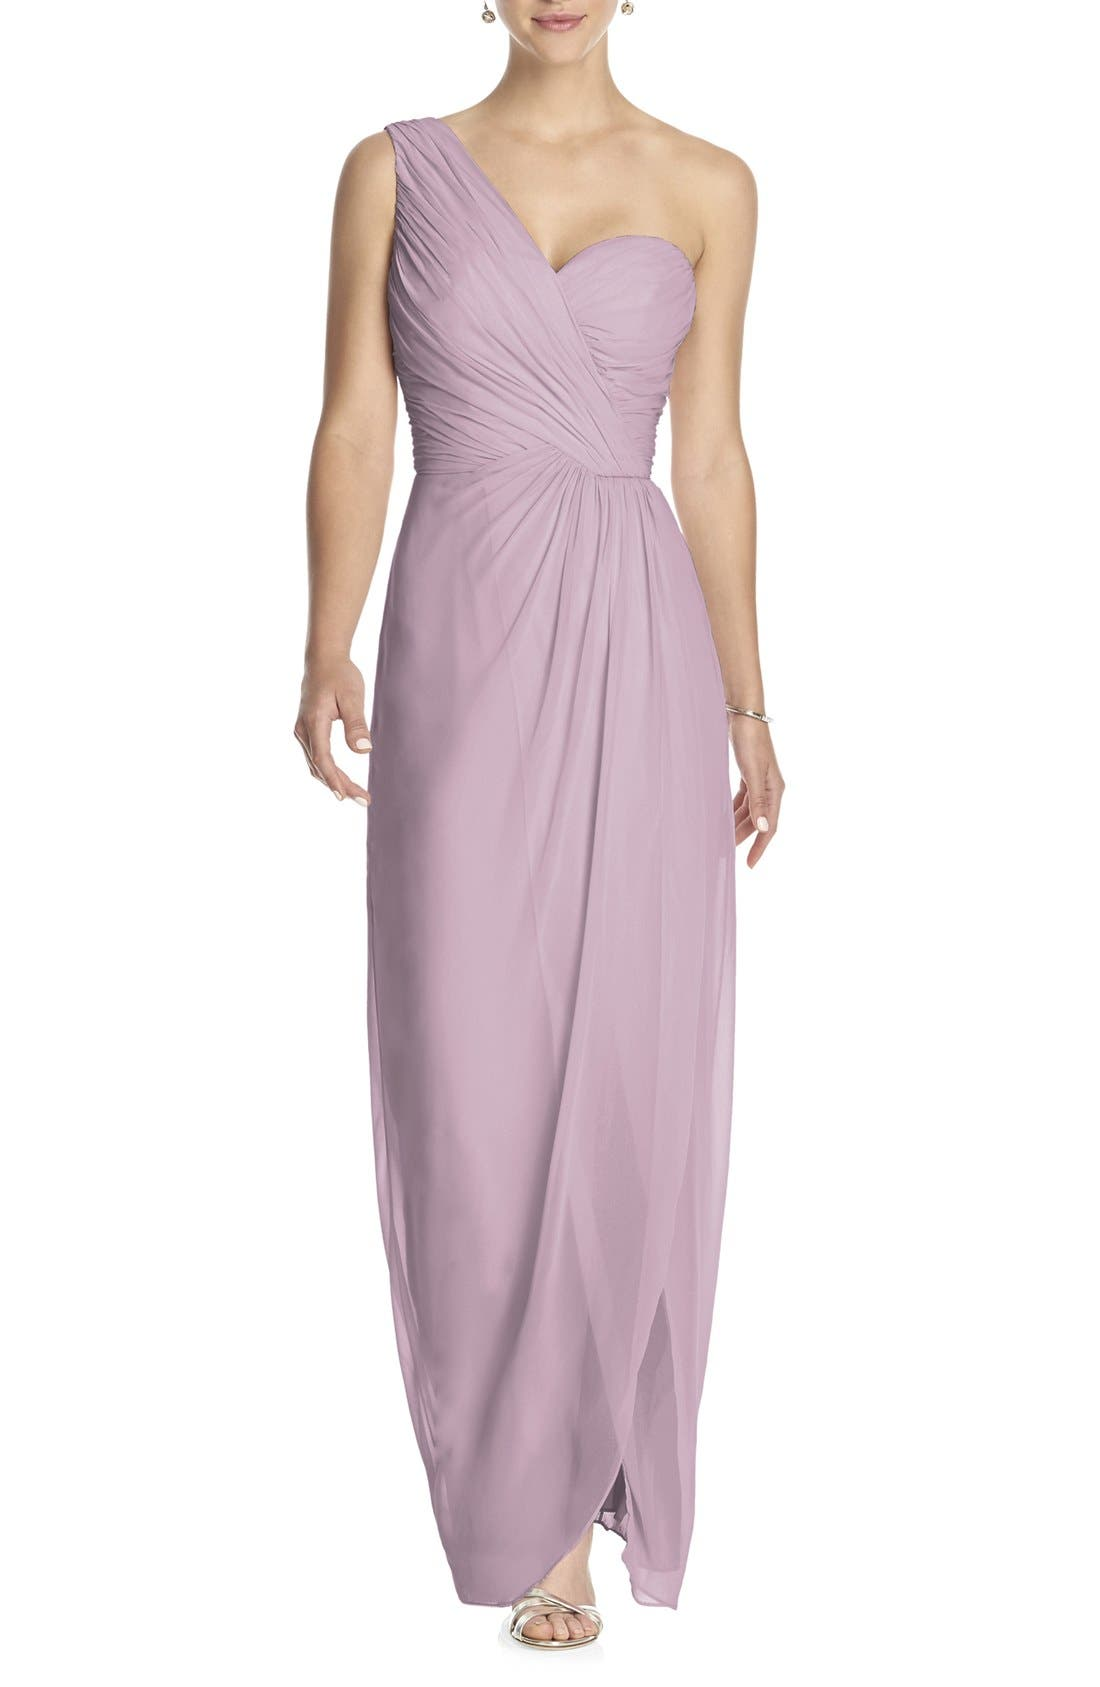 DESSY COLLECTION DessyCollection One-Shoulder Draped Chiffon Gown